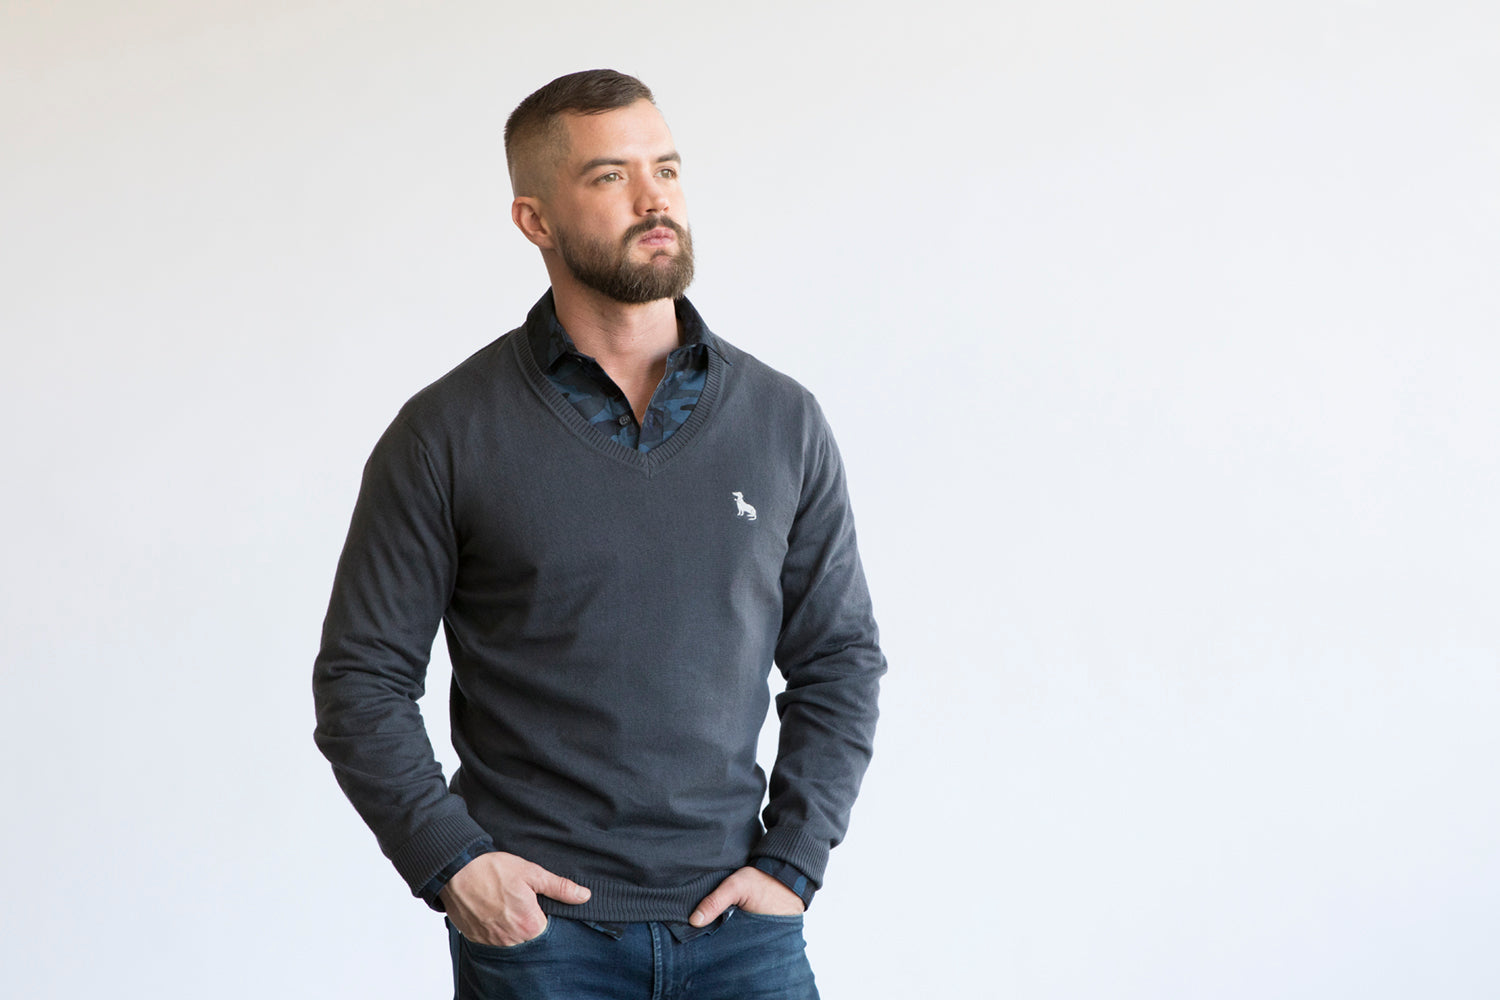 Charcoal Grey Cotton V-Neck Sweater